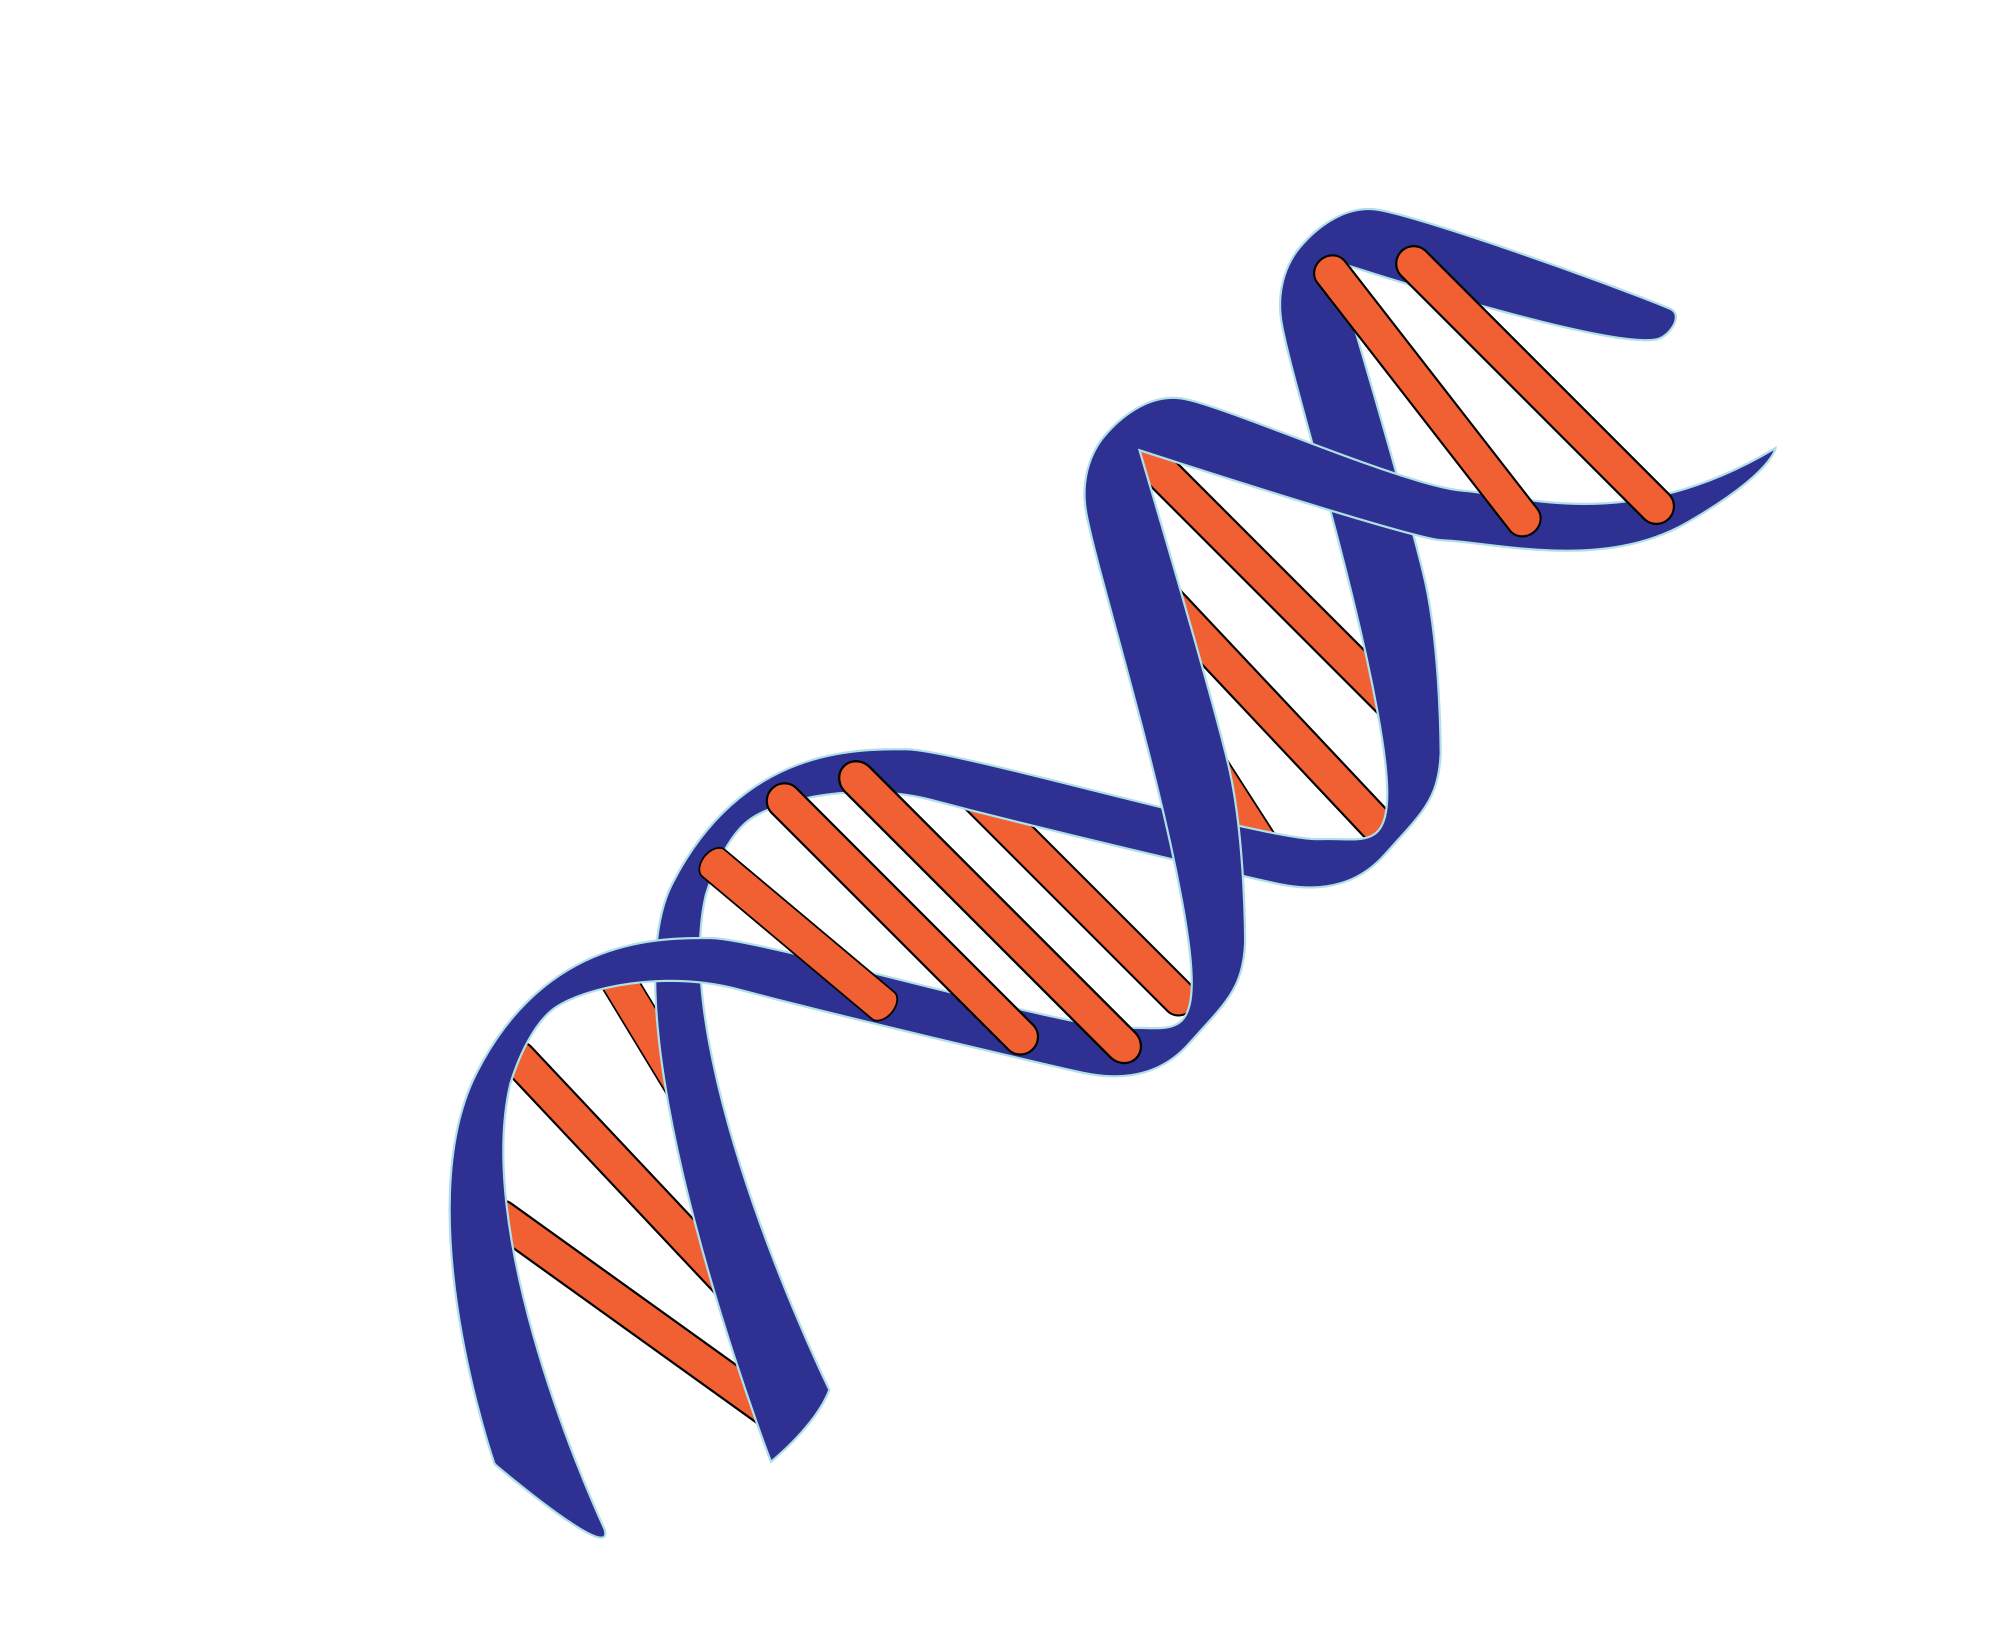 Dna svg. File small wikimedia commons